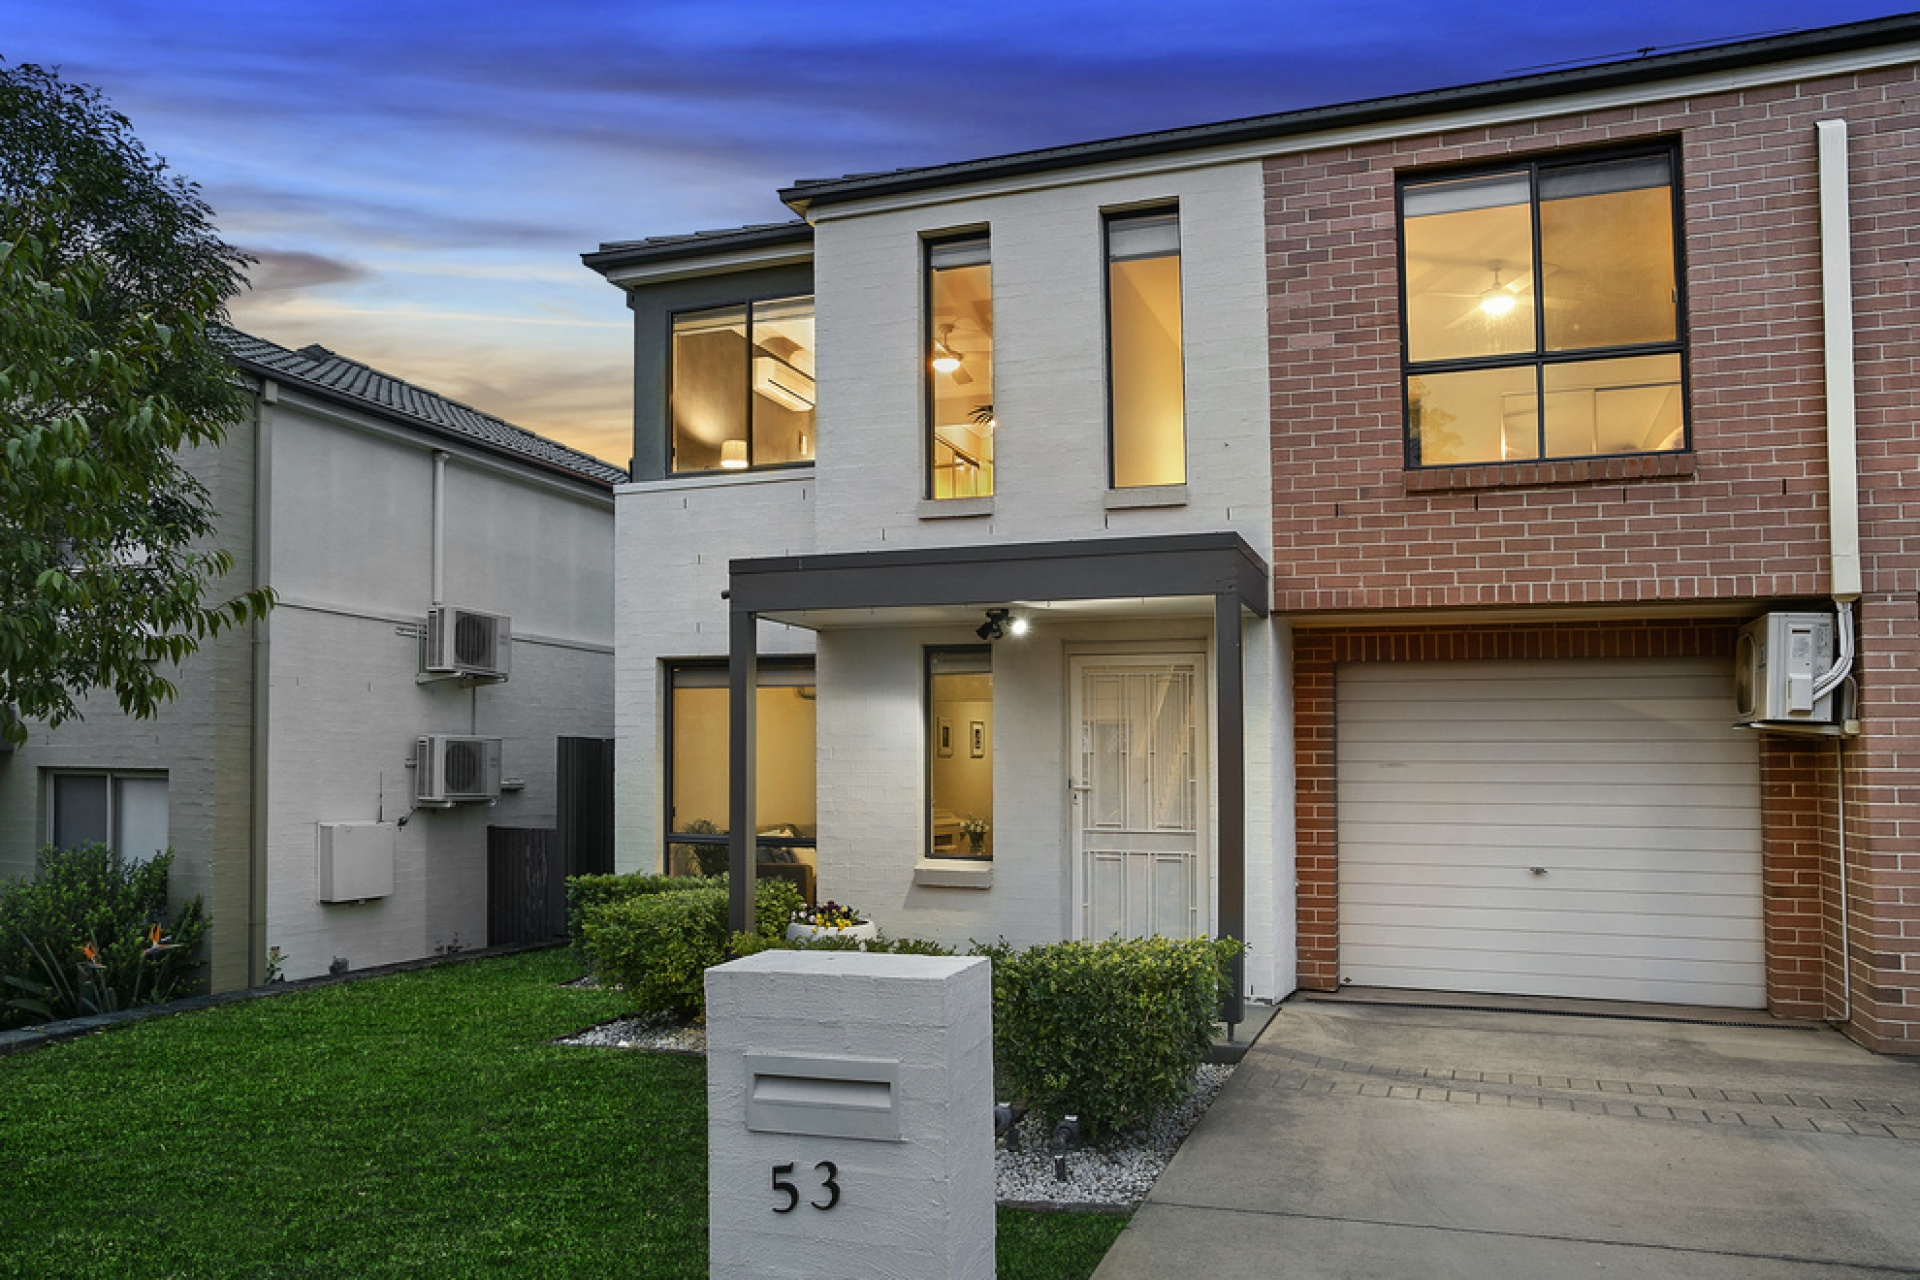 3 Rooms, House, Sold , Somersby Circuit, 2 Bathrooms, Listing ID 1101, Acacia Gardens, NSW, Australia,